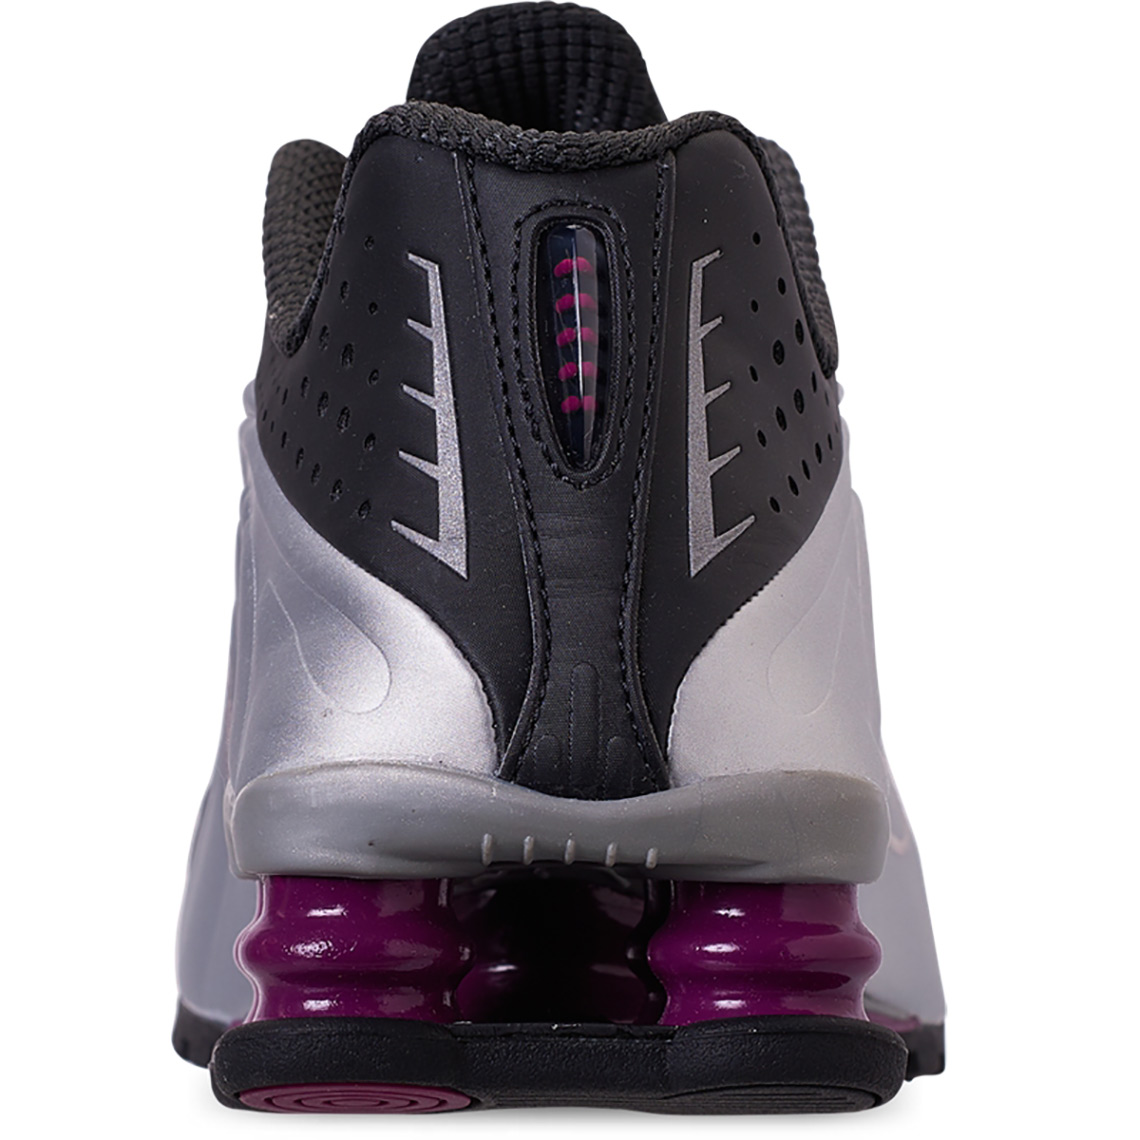 "Nike Shox R4 ""True Berry"" Detailed s And Release Info"